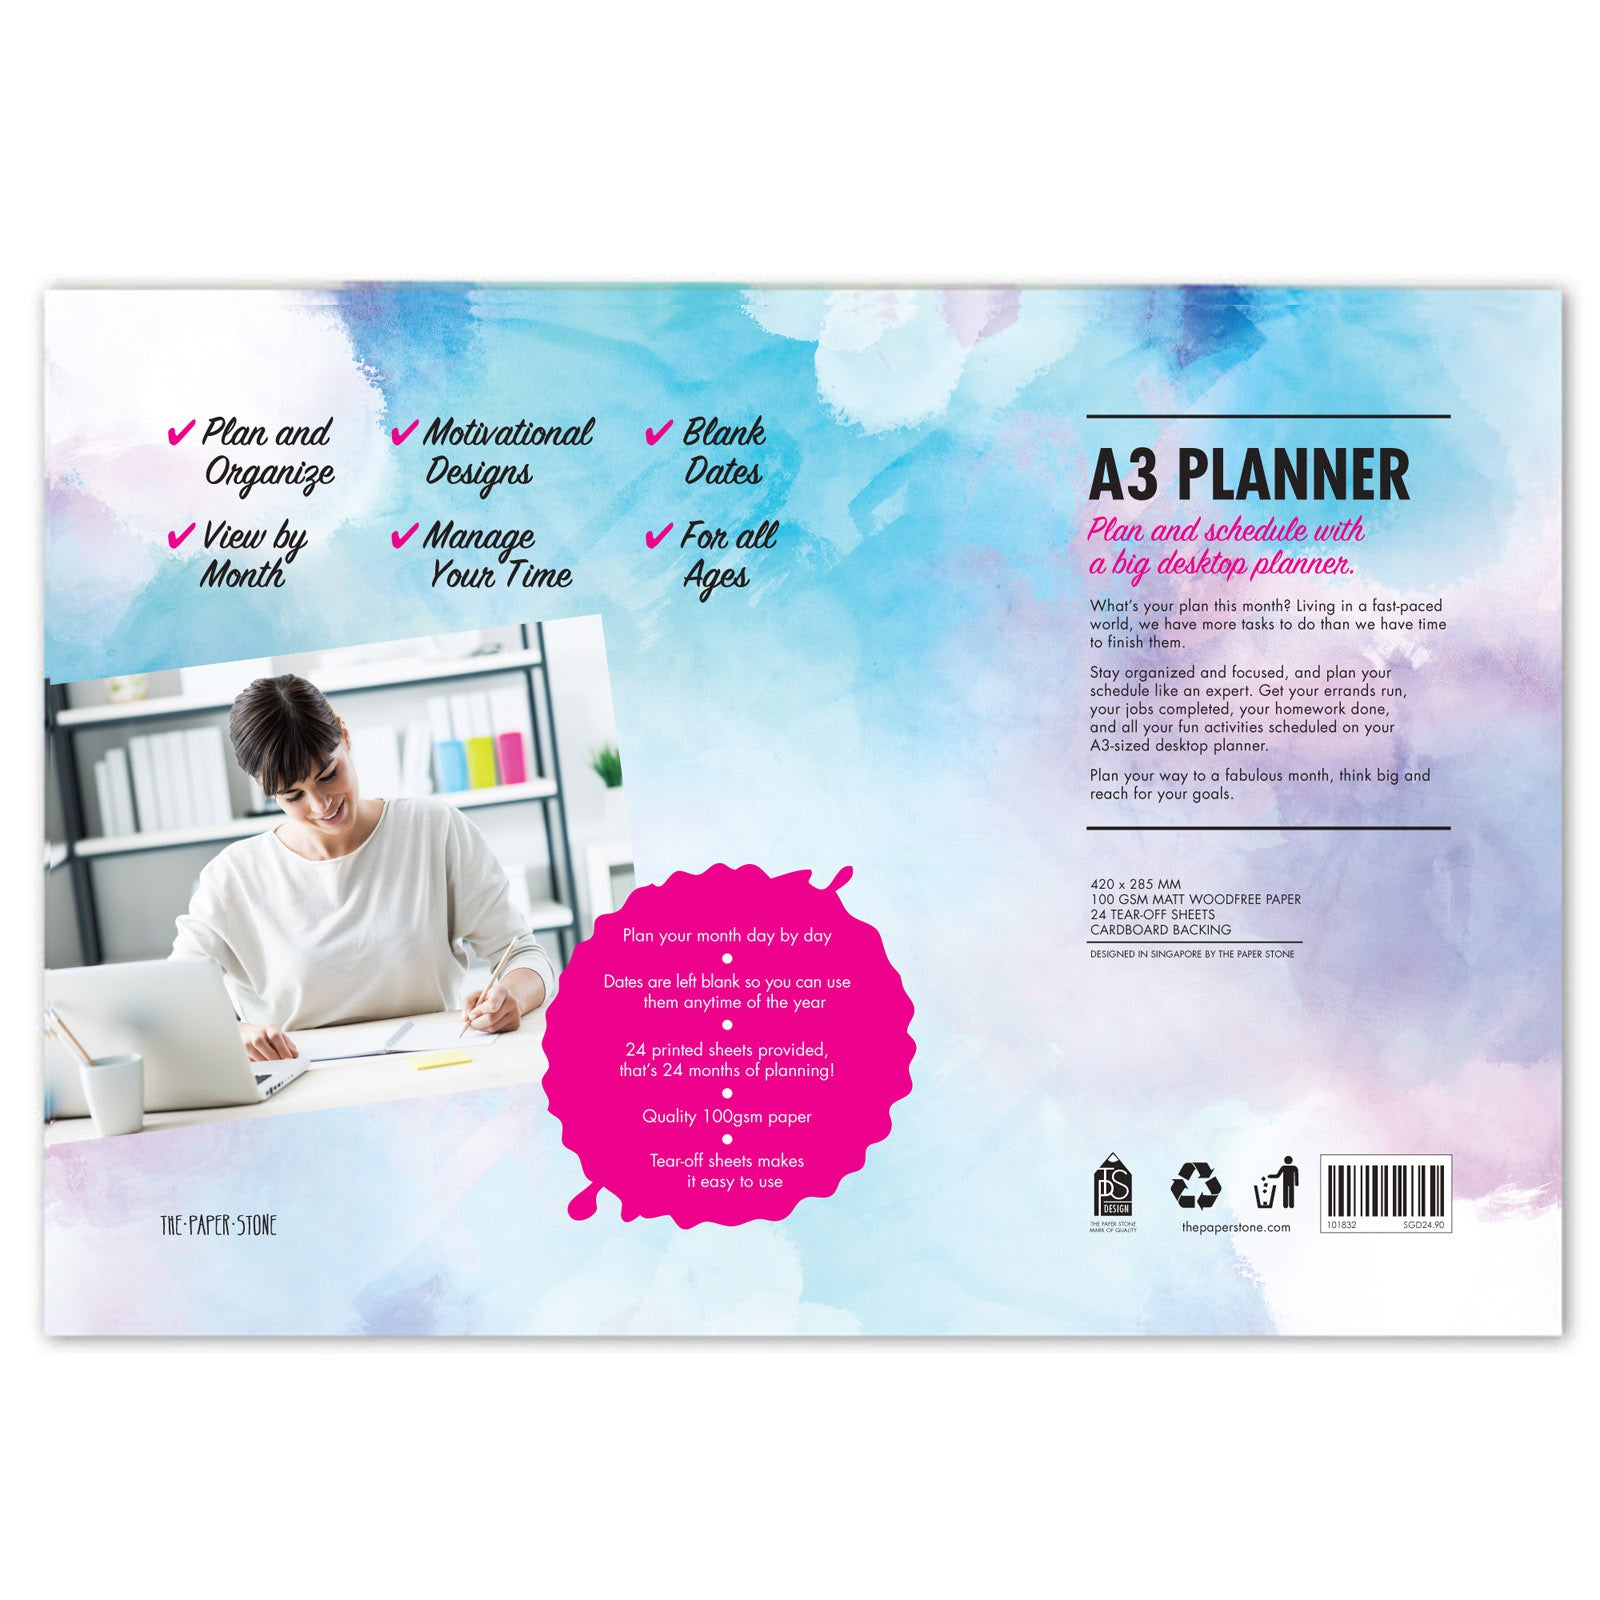 A3 Planner - Big Dream